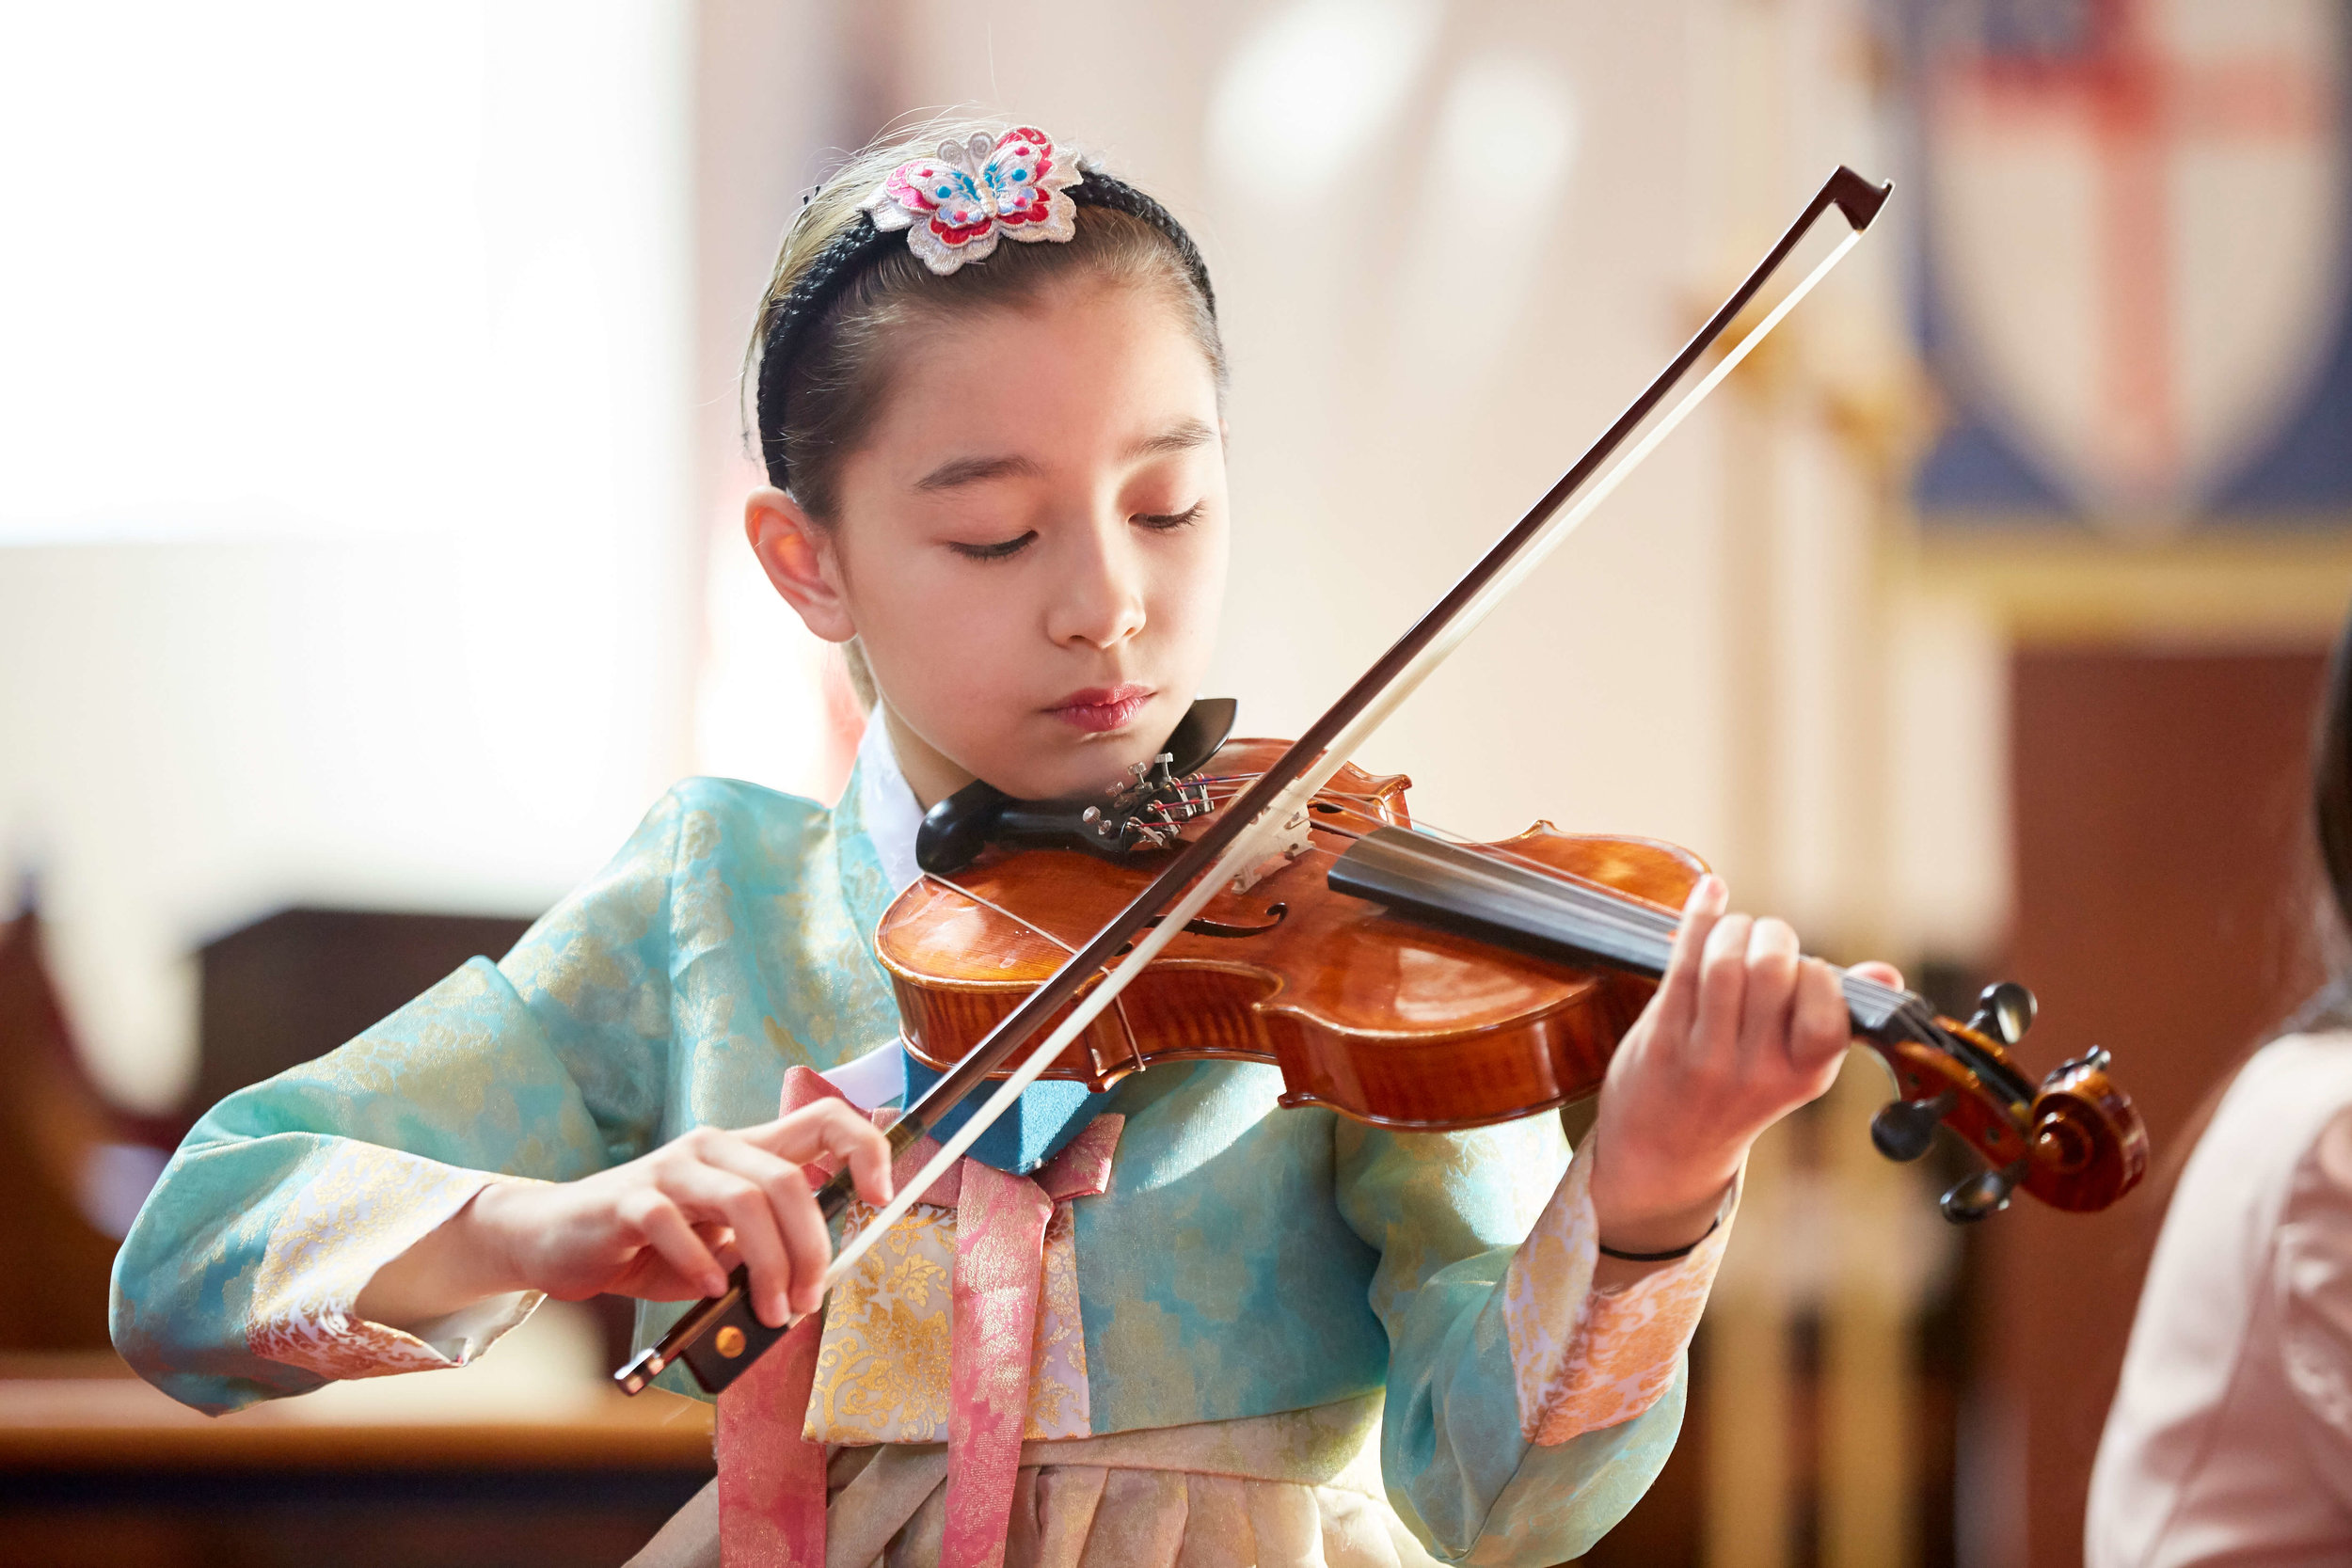 VIOLIN/CELLO LESSONS IN CINCINNATI, ANDERSON & MASON   for beginner, intermediate, and advanced students of all ages  CALL 513-560-9175 TODAY TO SCHEDULE YOUR FIRST LESSON   Request Info